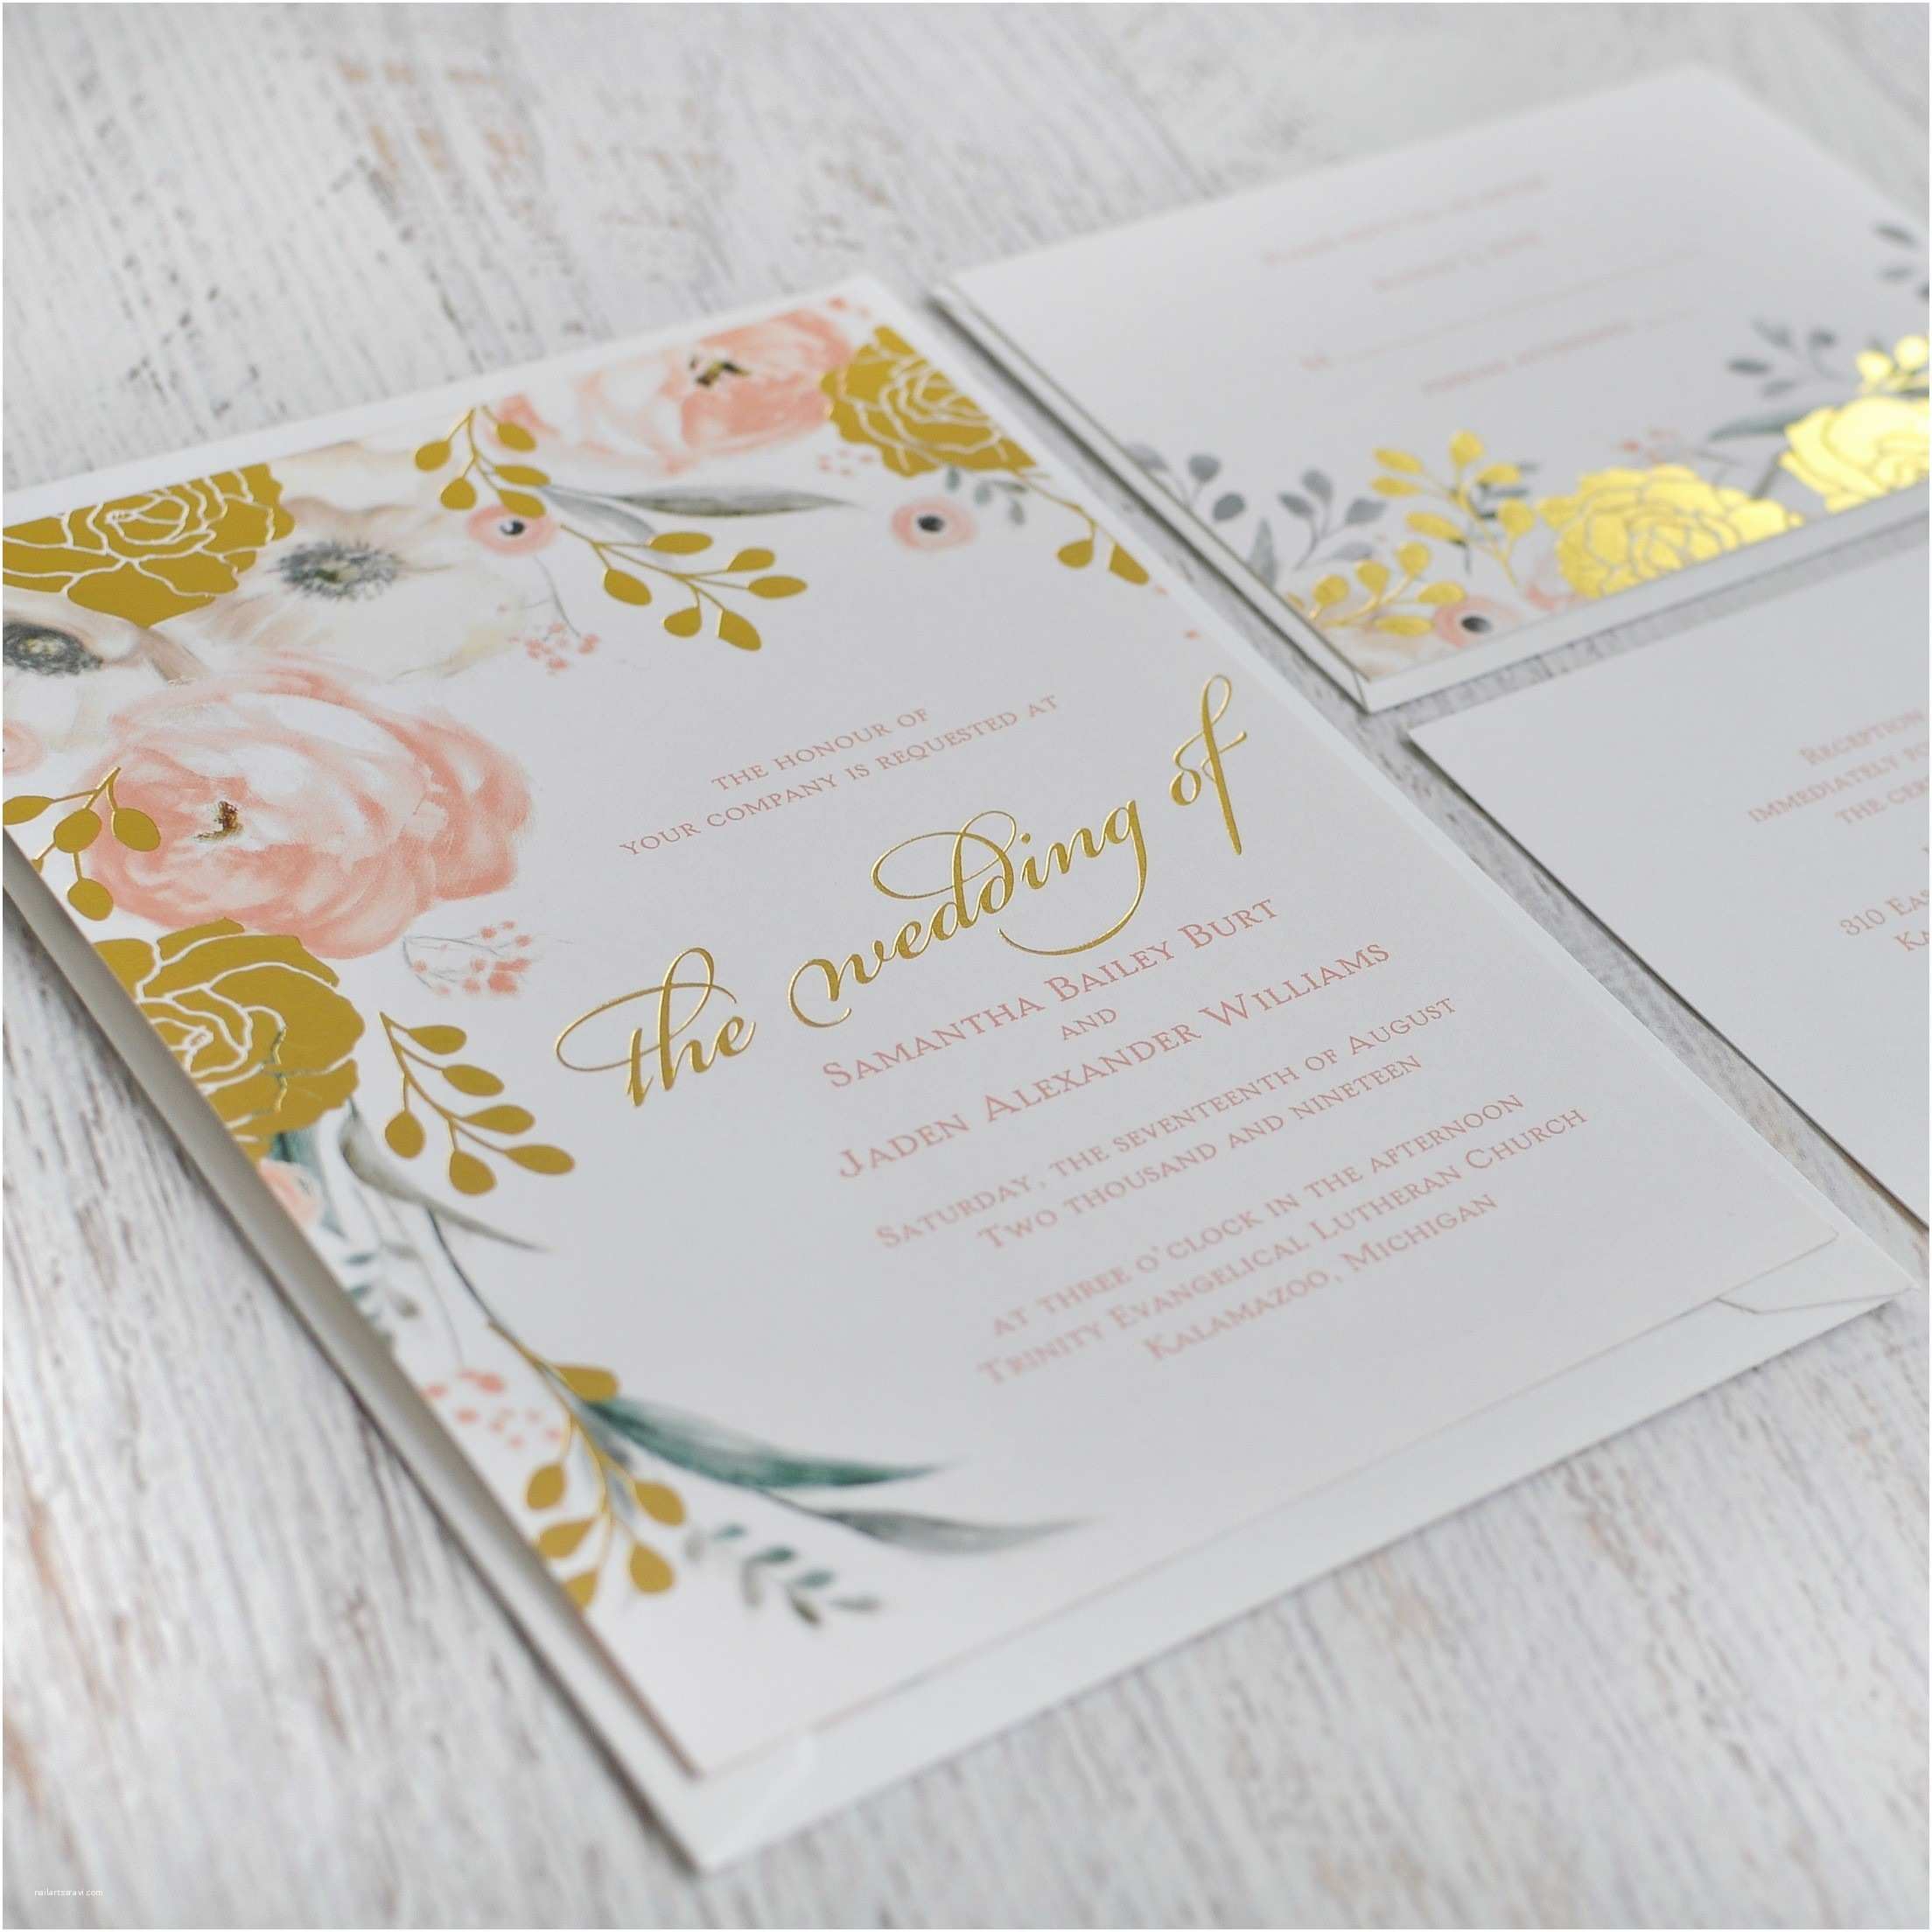 Affordable Wedding Invitation Sets Beauty and the Beast Wedding Invitations Inspirational